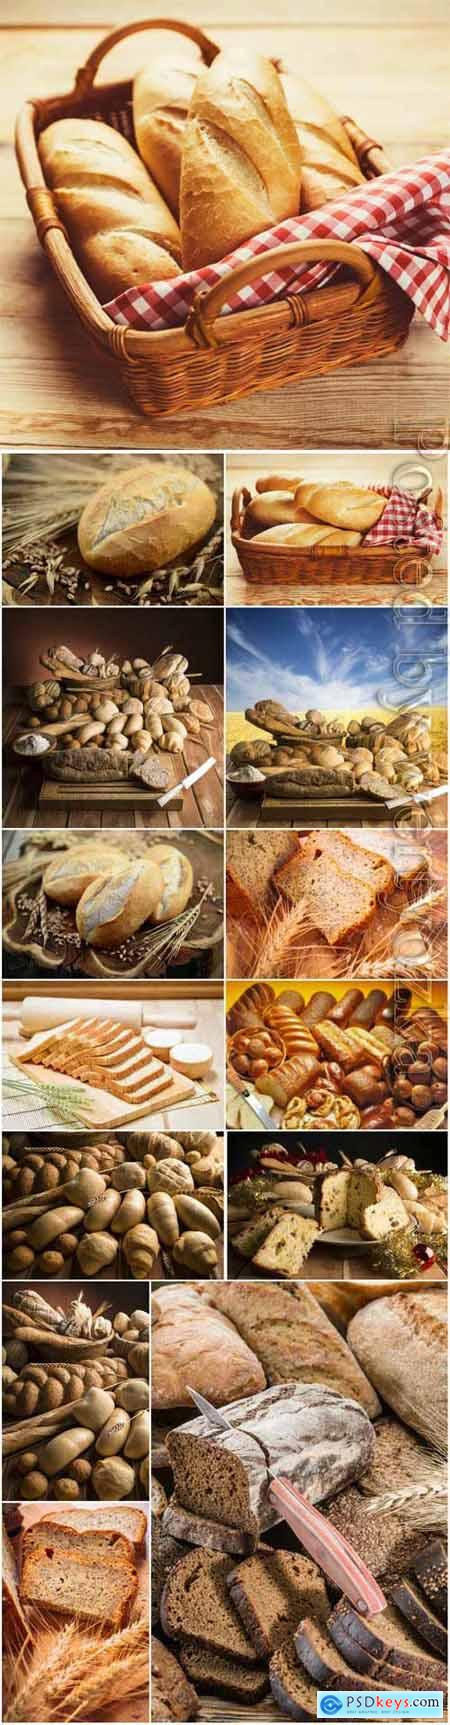 Baskets with fresh bread stock photo